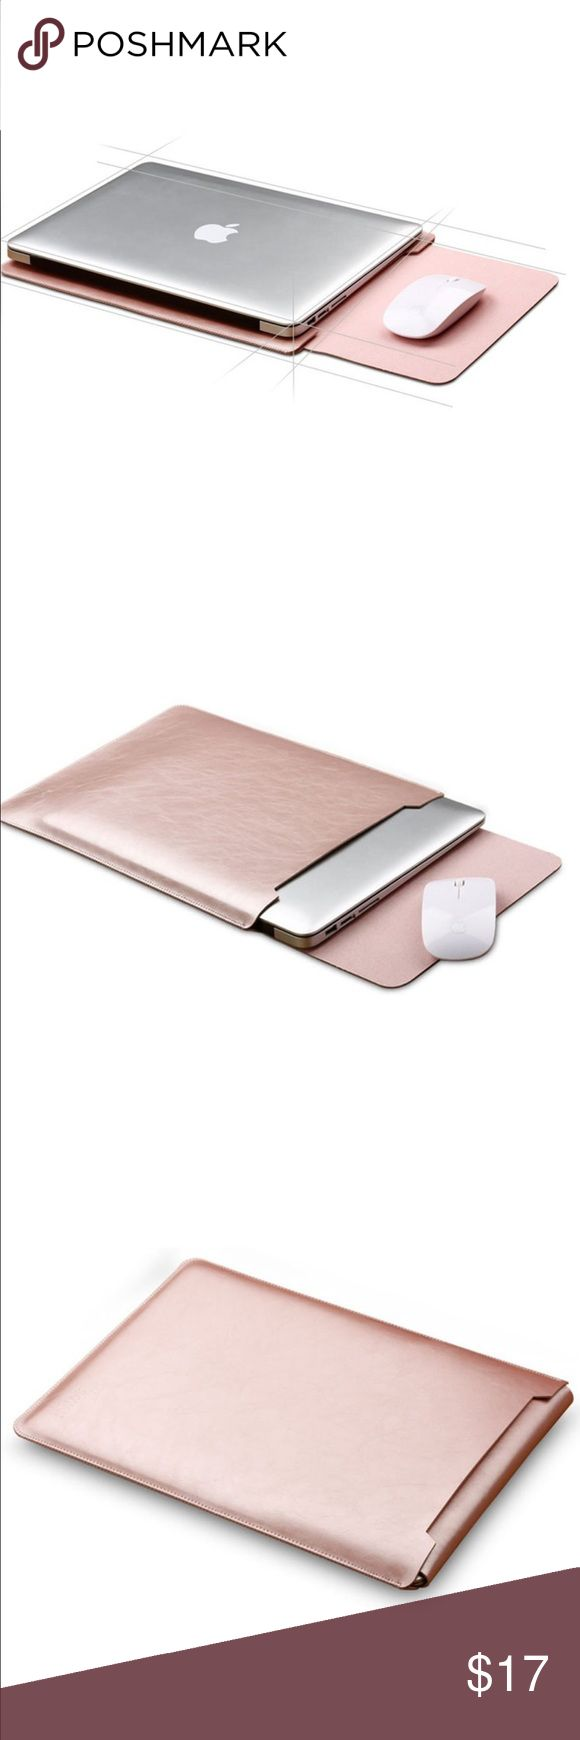 "MacBook Air Leather Sleeve Coming soon!  MacBook Air and MacBook Pro microfiber Leather Sleeve in Rose Gold (13.3"").  This slim sleeve design will protect your from scratches without the bulkiness.  Because it's a slim design it will fit in your messenger bag, back and purse.  The flip pad works as a mousepad.                       Trades Accessories Laptop Cases"